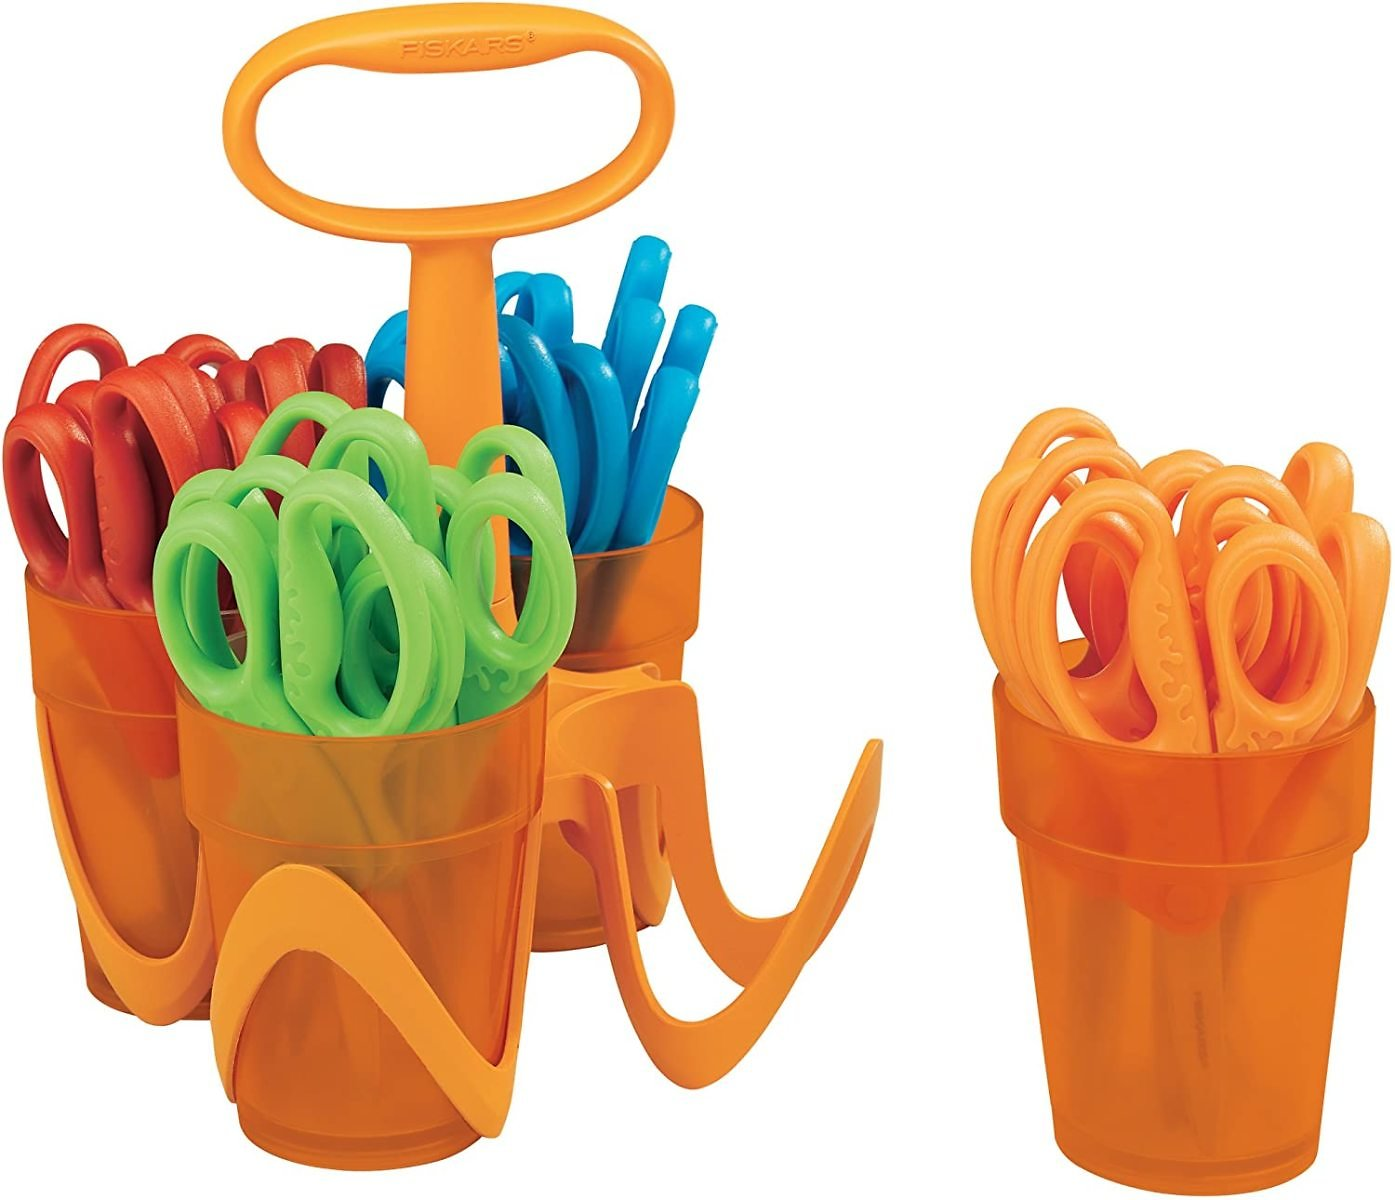 24-Count Fiskars 5 Inch Blunt-tip Kids Scissors with 4-Cup Carrying Caddy